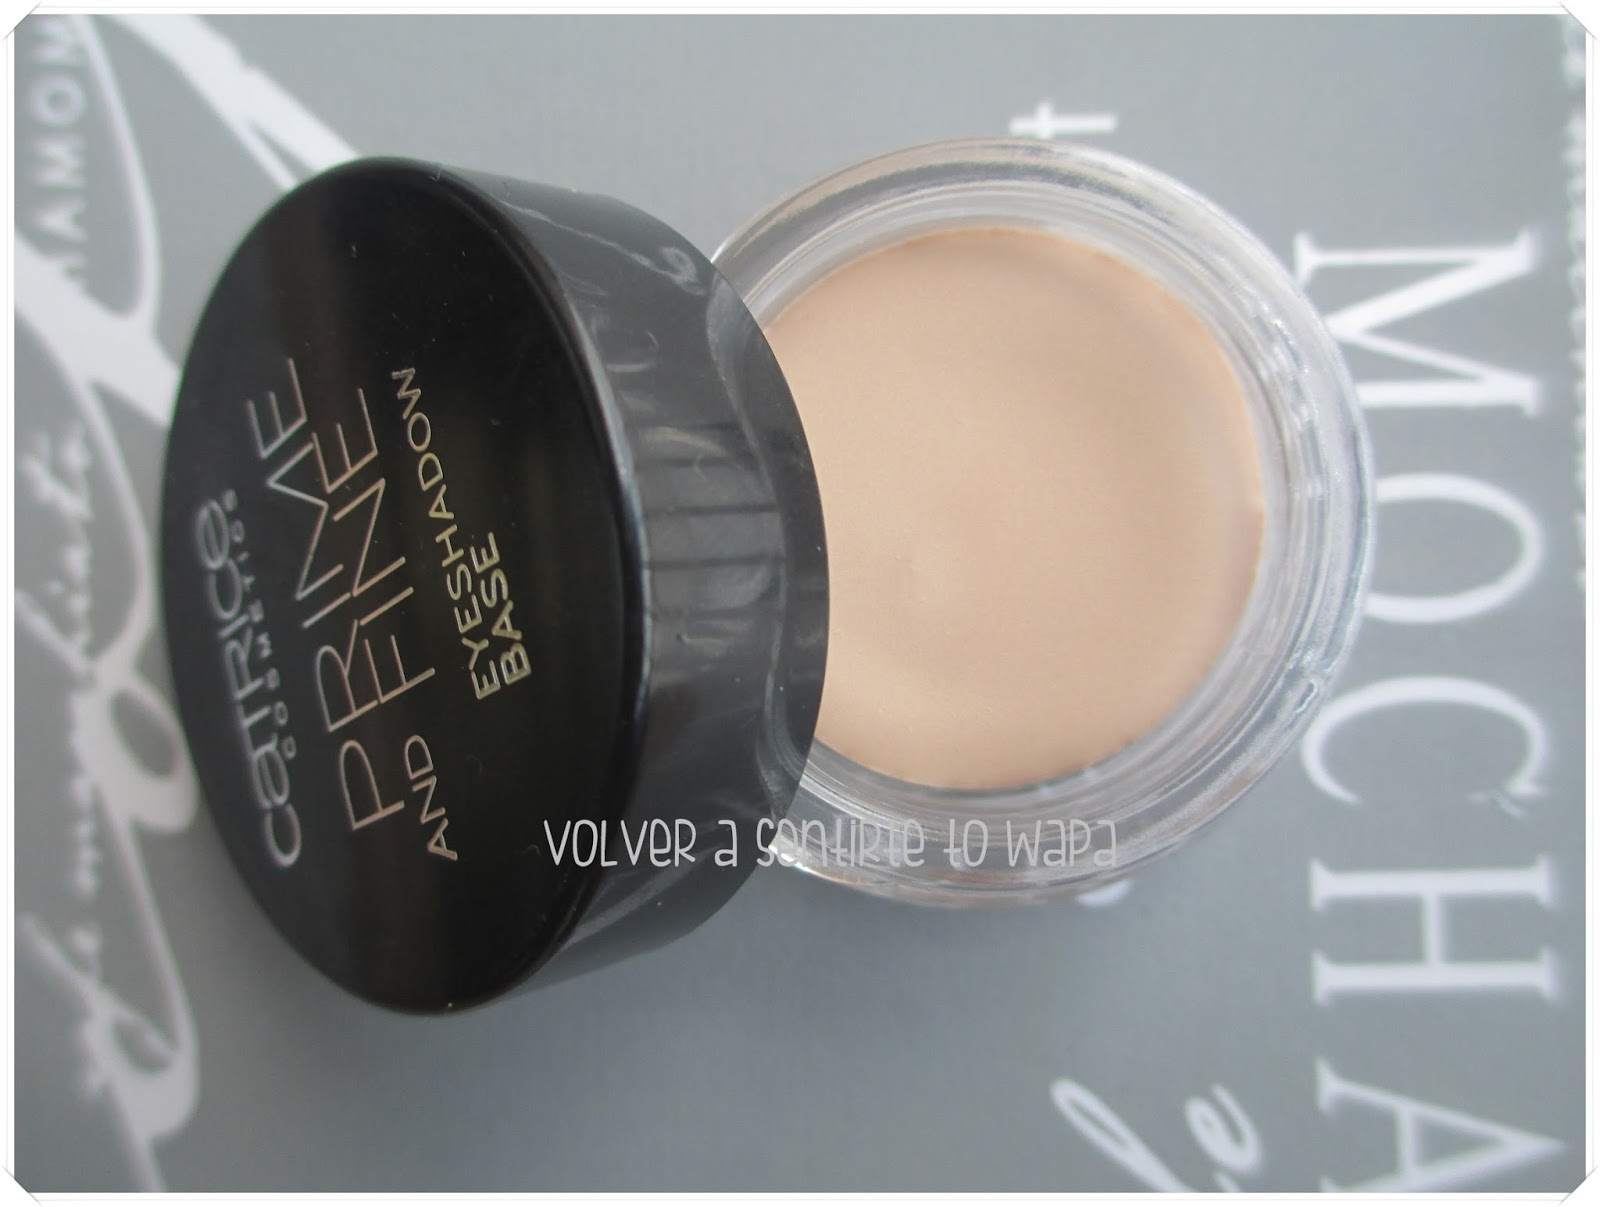 Base de Ojos Prime and Fine de Catrice